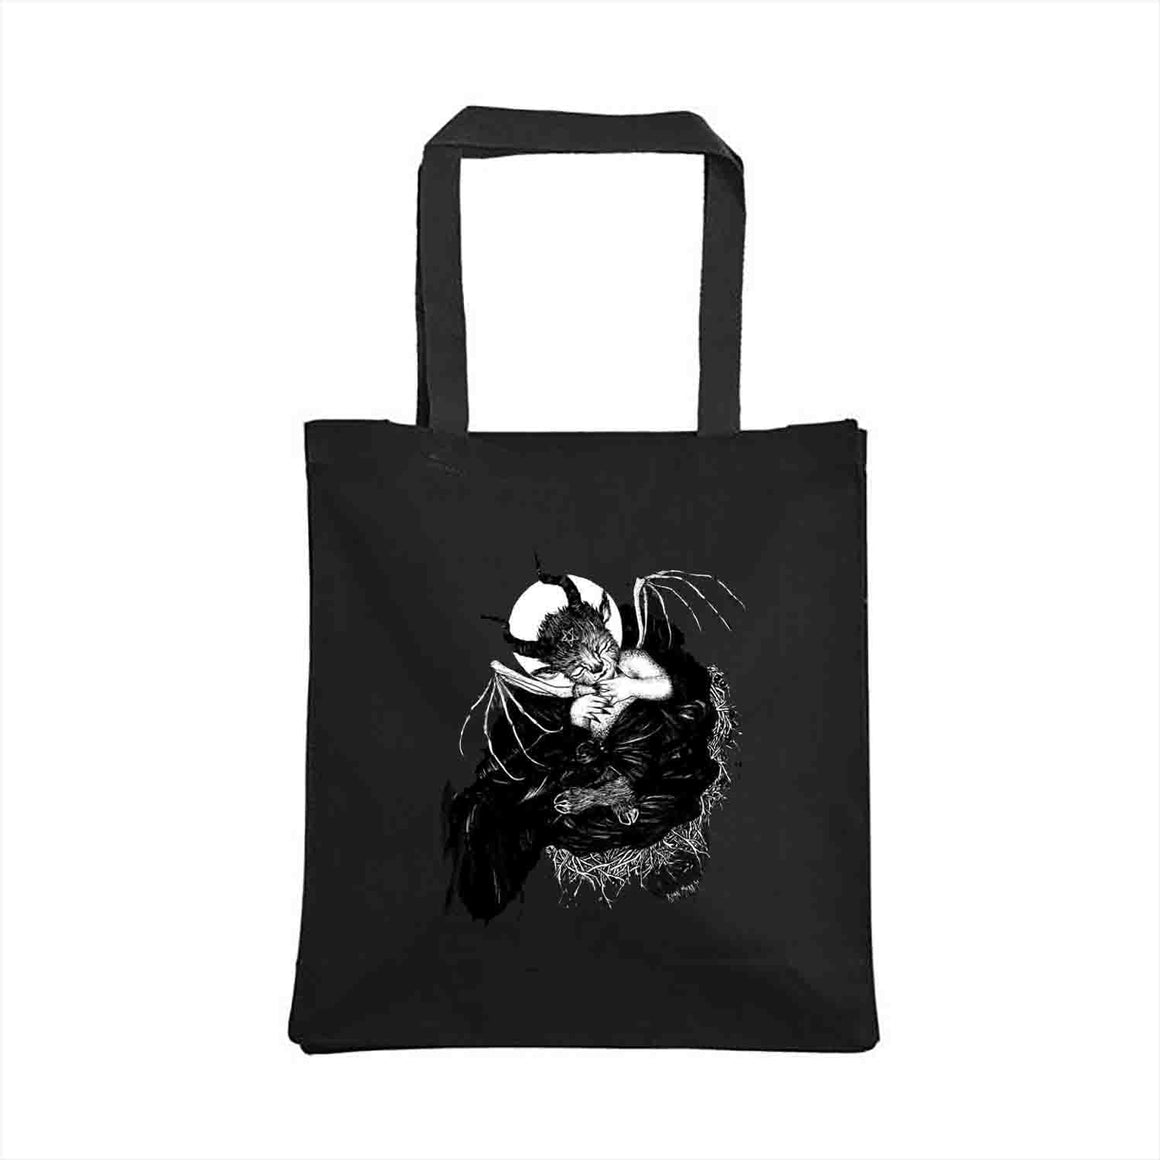 Baby Baphomet Tote Bag design by The Black Veil Studio